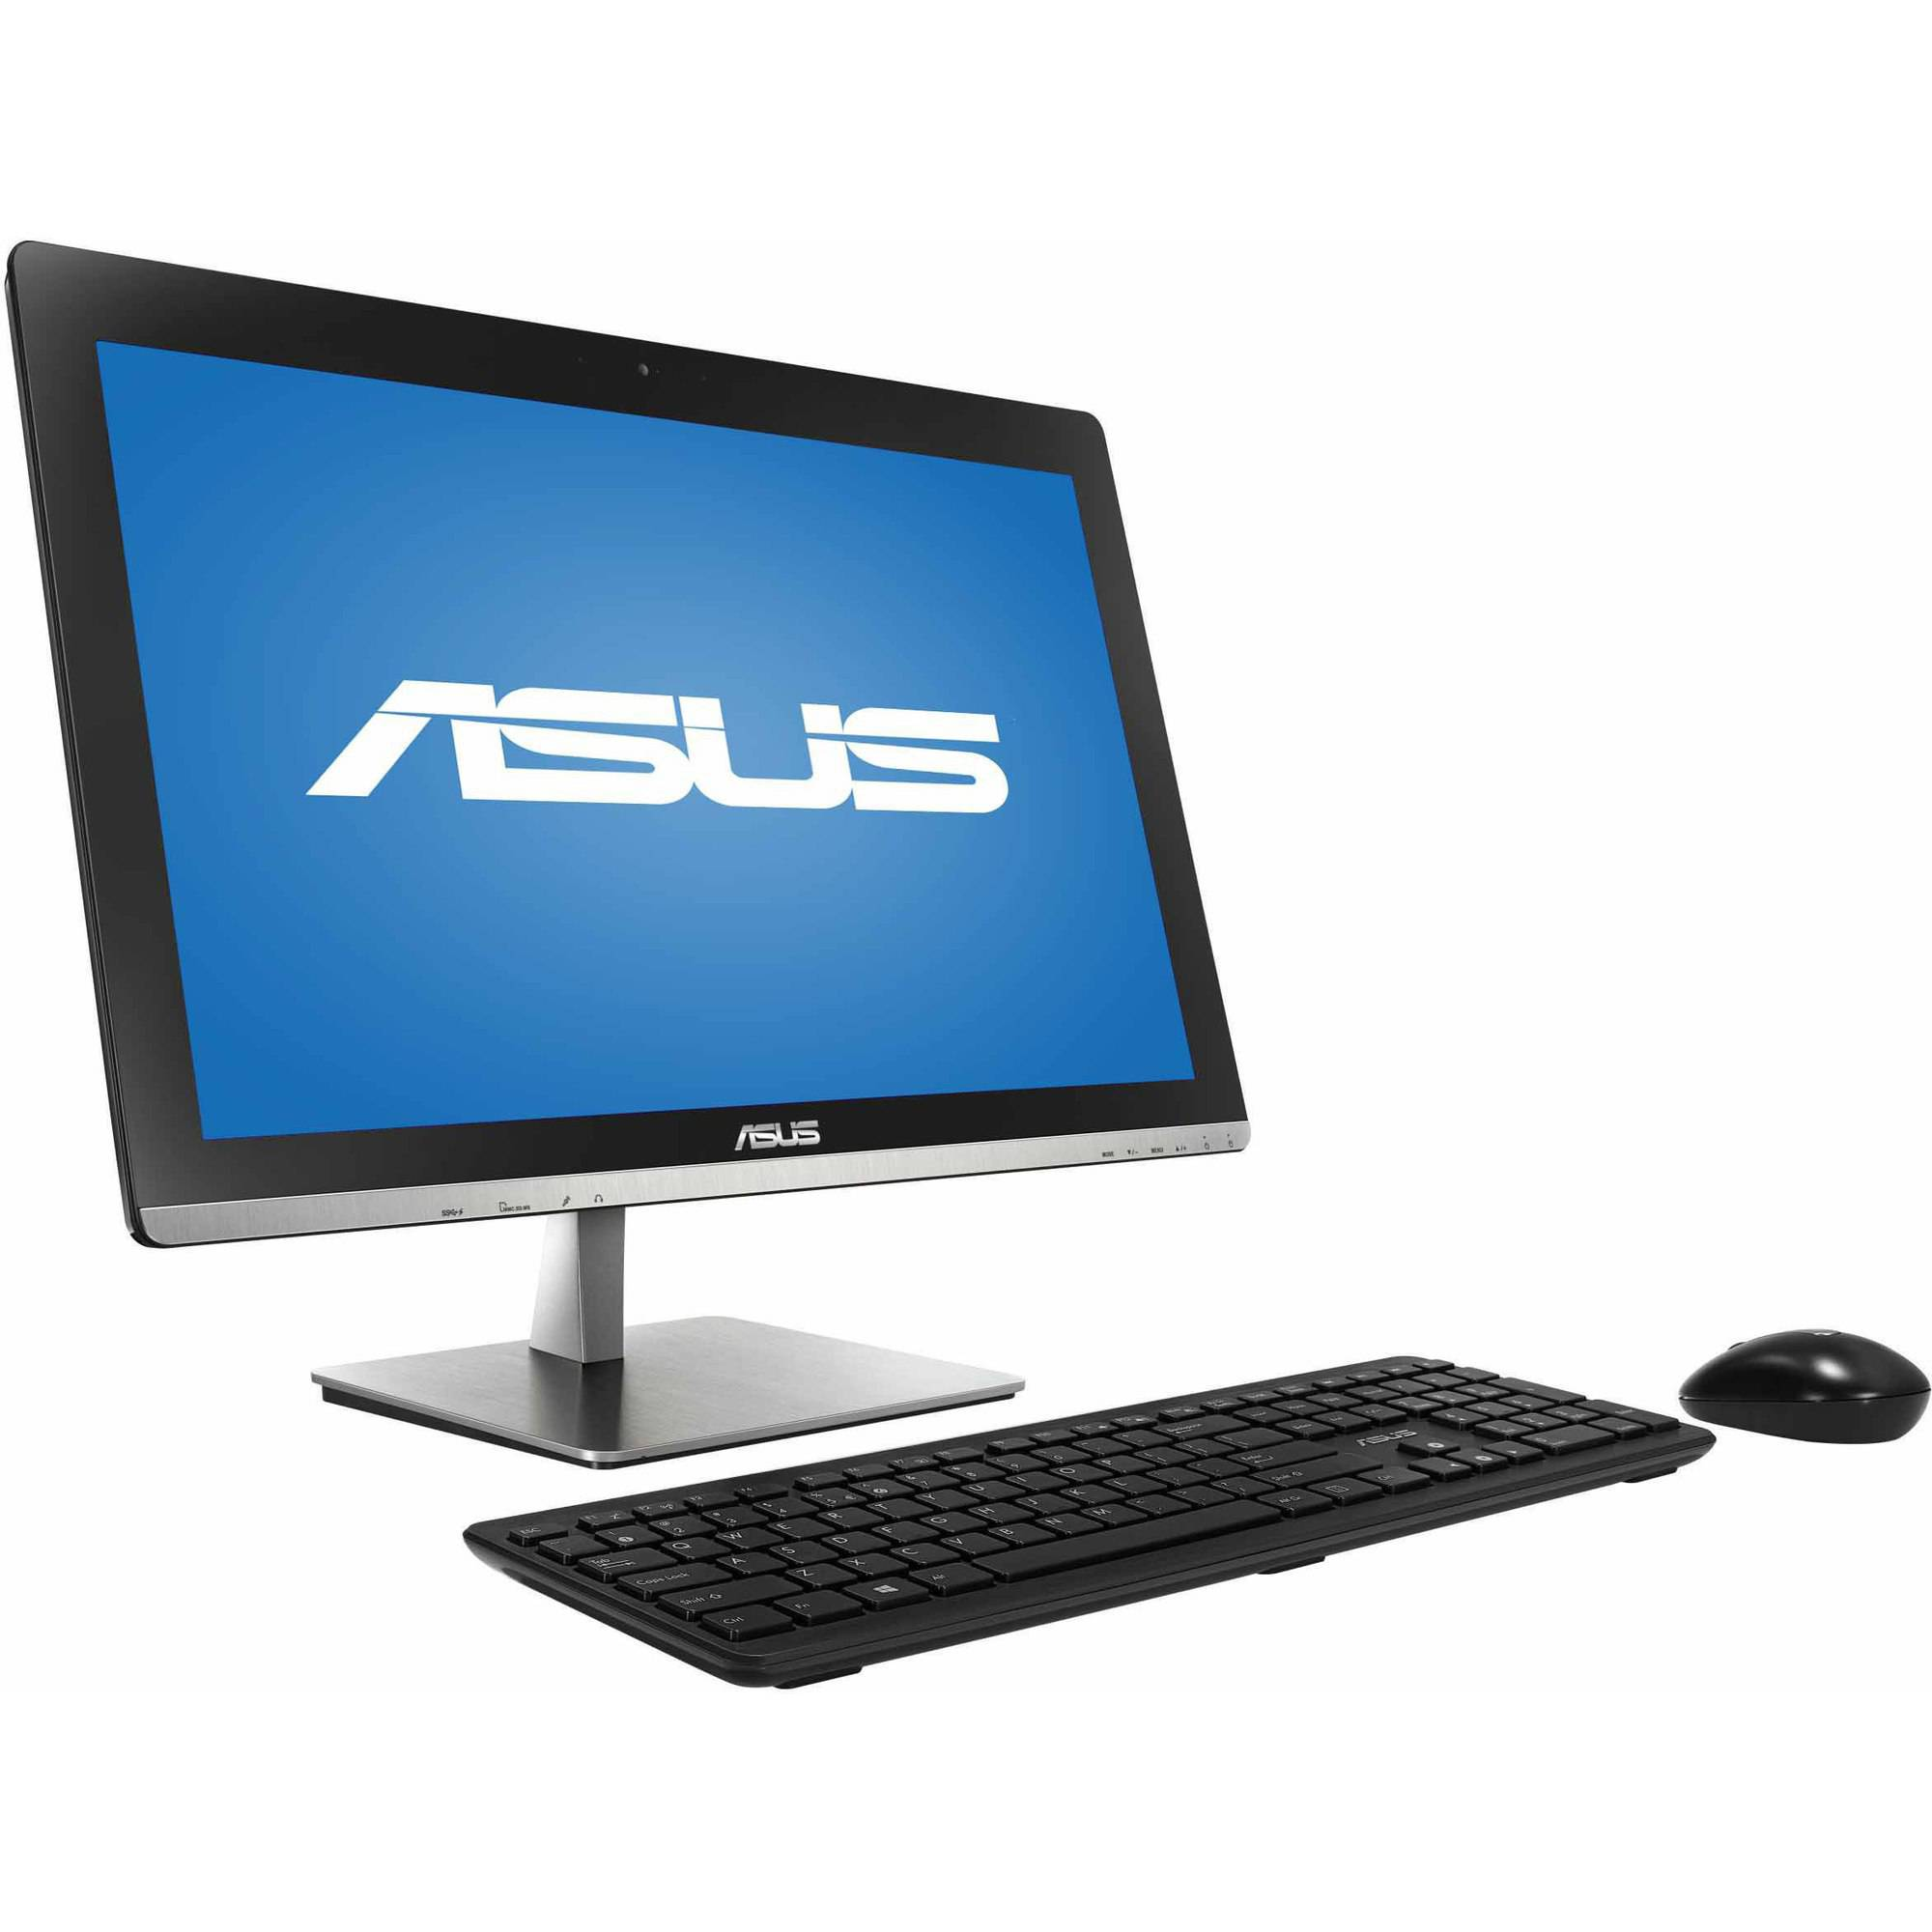 "ASUS Black All-in-One Desktop PC with Intel Pentium J2900 Processor, 4GB Memory, 23"" Monitor,  1TB Hard Drive and Windows 8.1  (Eligible for Windows 10 upgrade)"